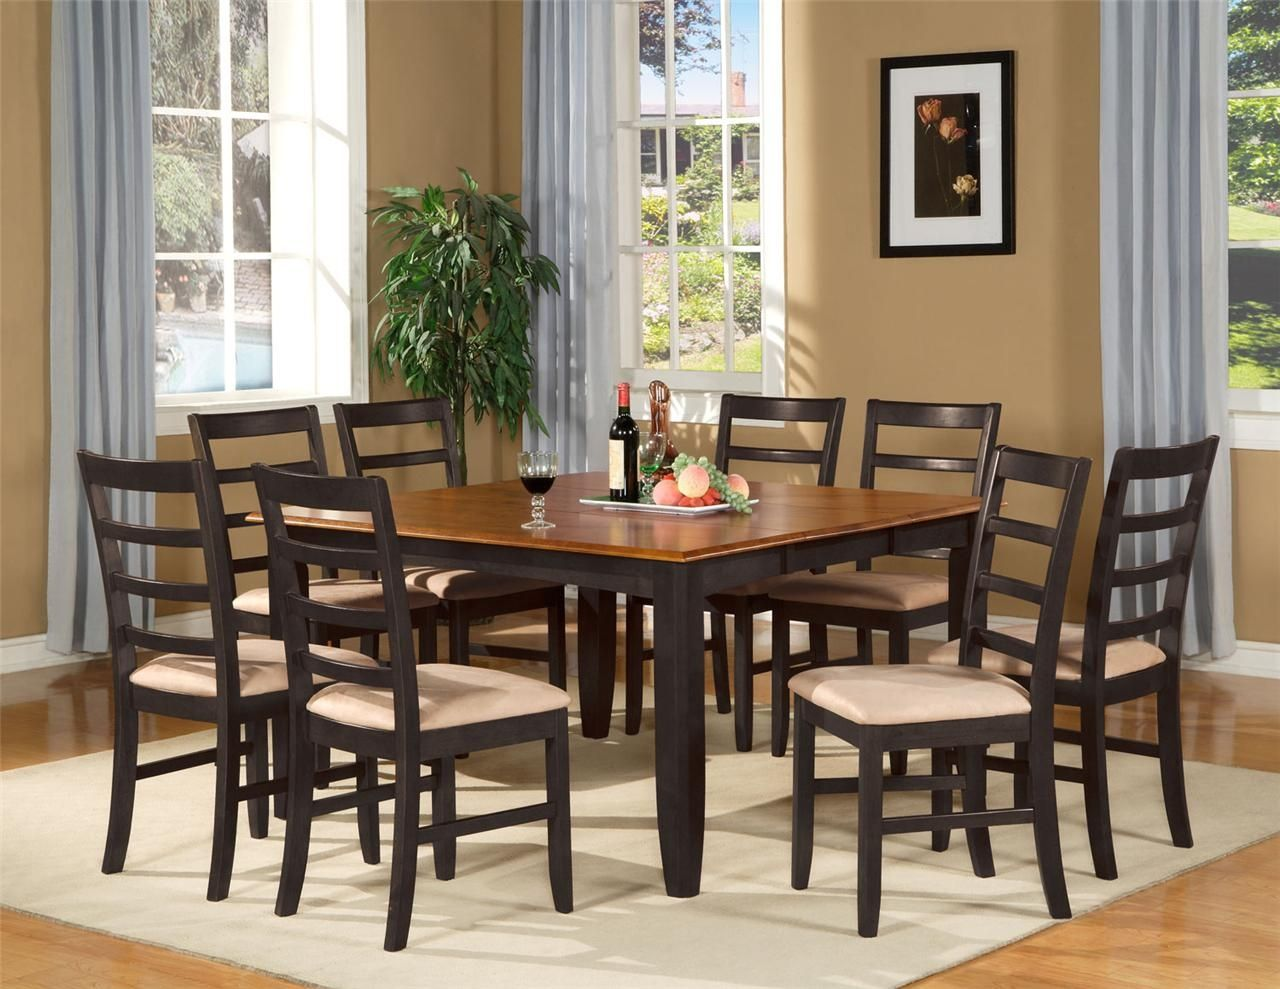 Square Dining Room Table 8 Chairs  Httpfmufpi  Pinterest Amusing Square Dining Room Table Inspiration